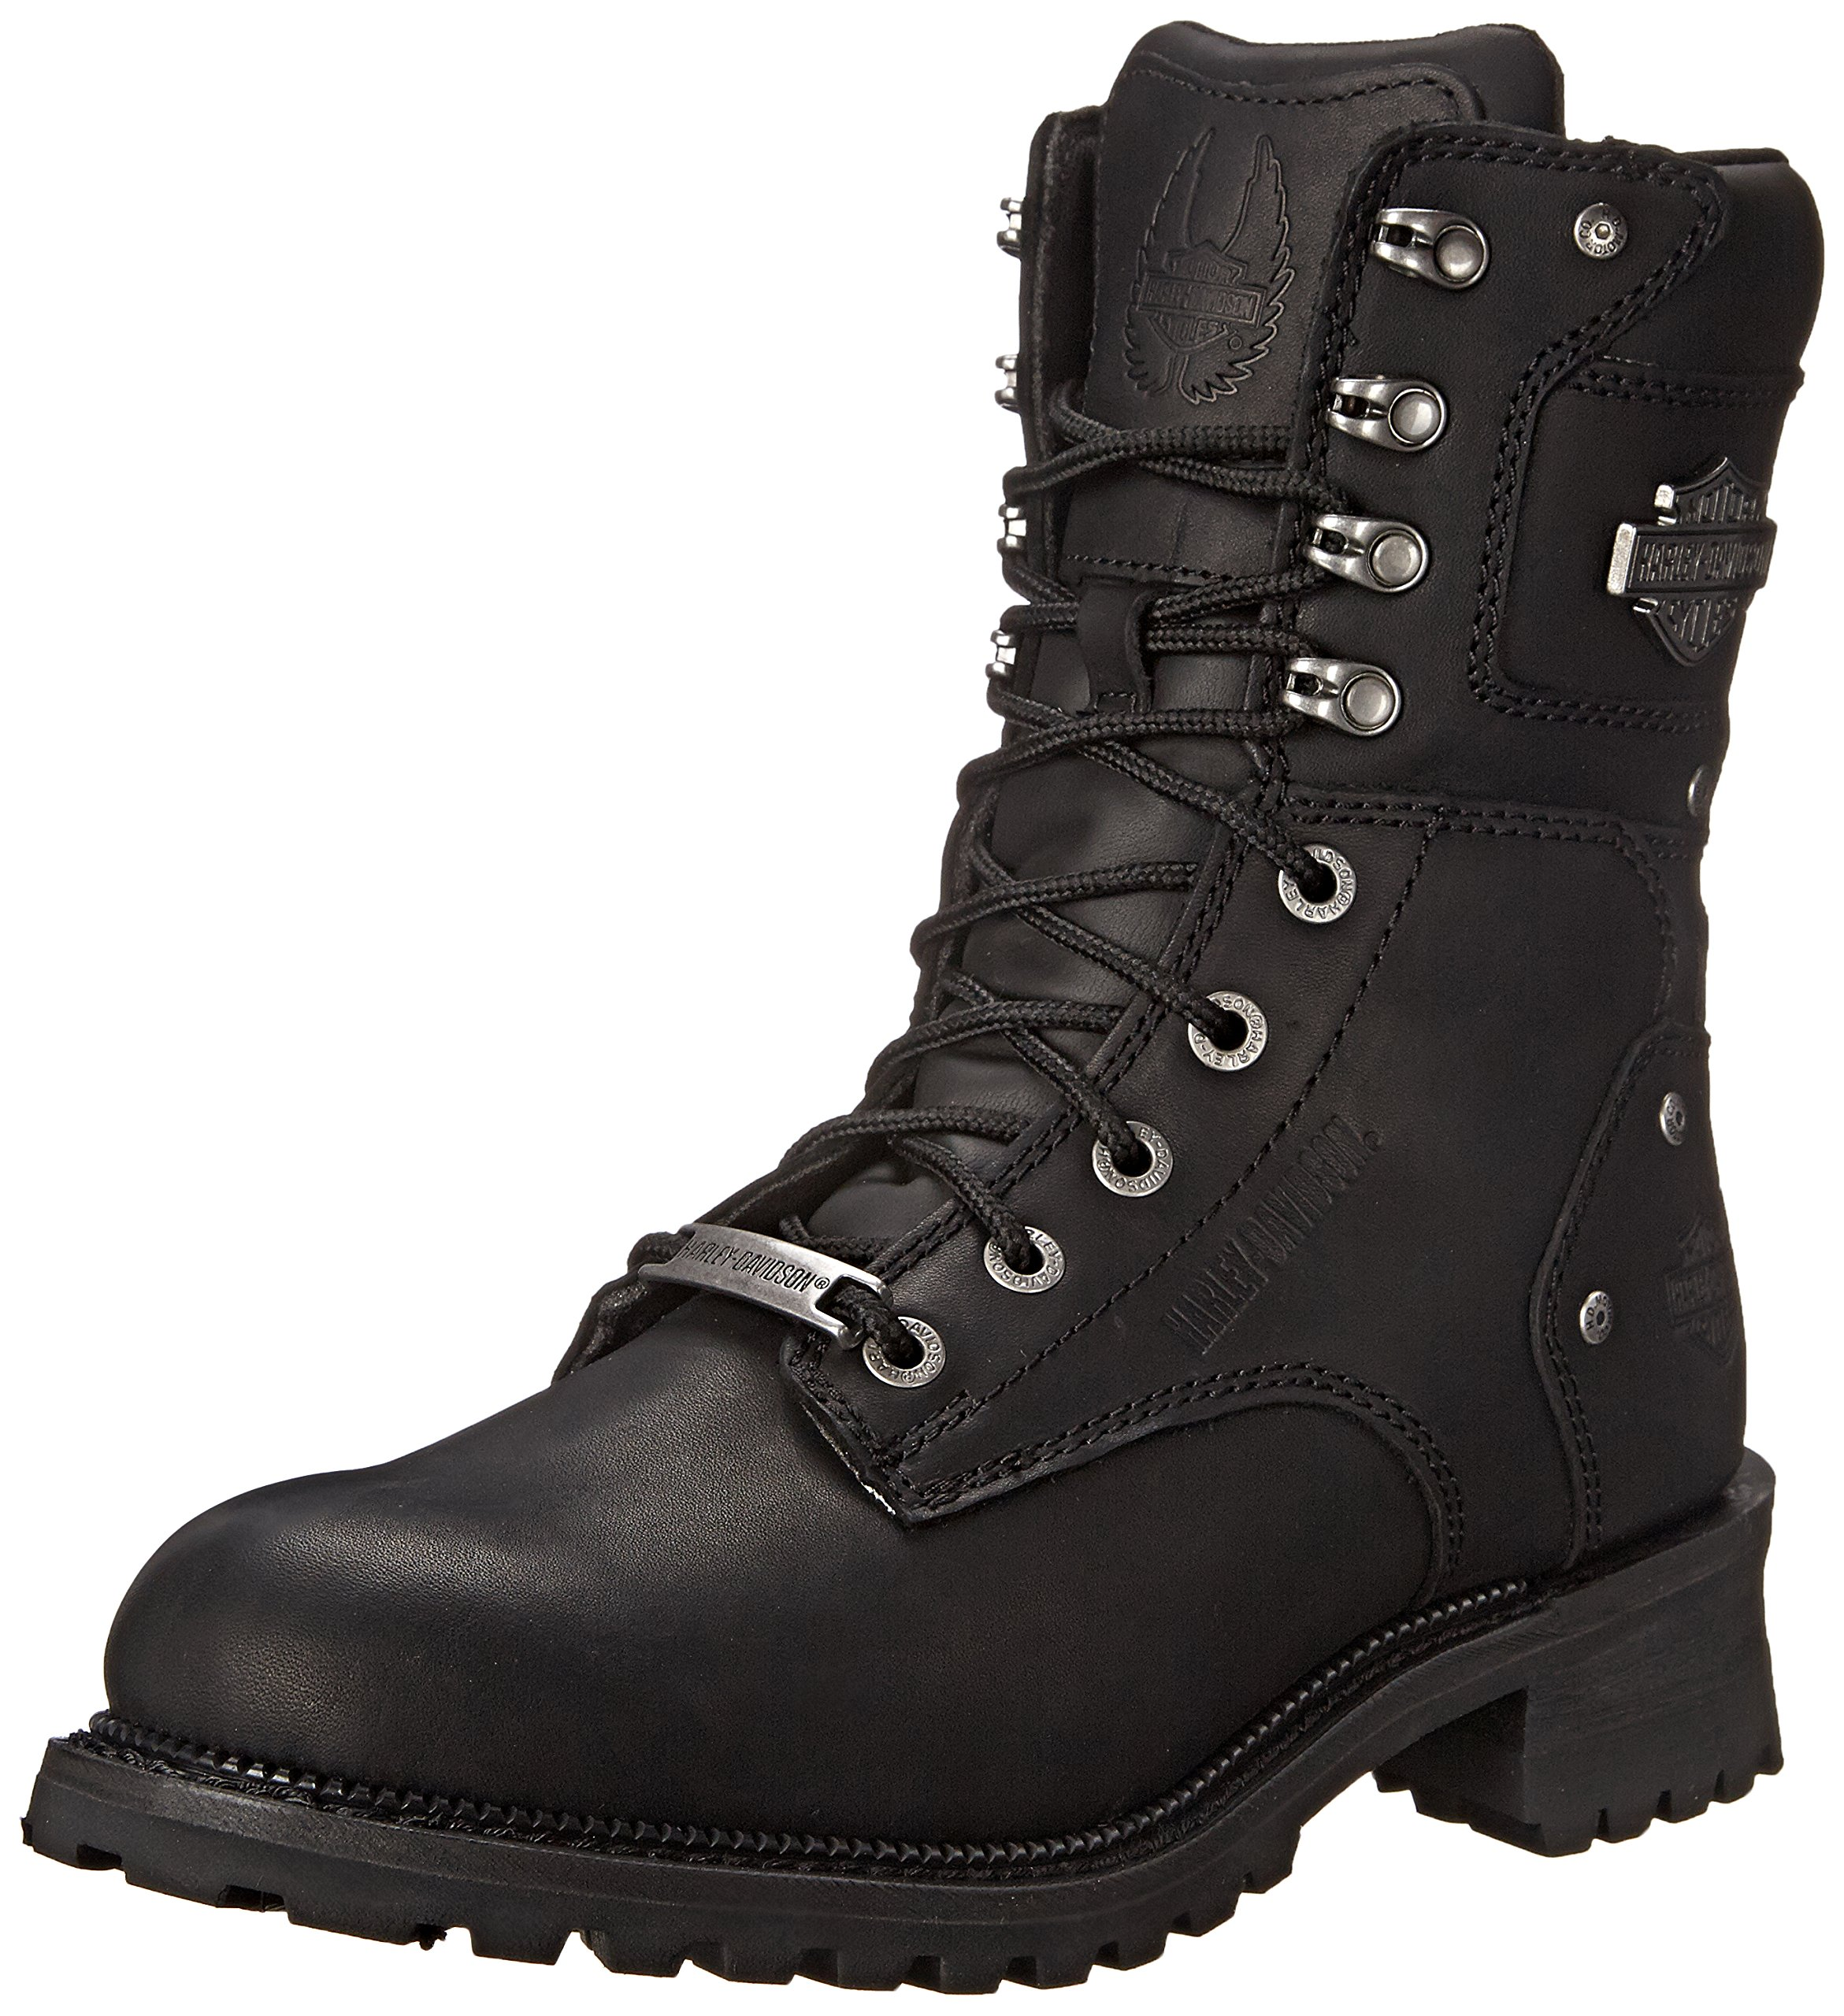 Harley-Davidson Men's Elson Motorcycle Logger Boot, Black, 10.5 M US